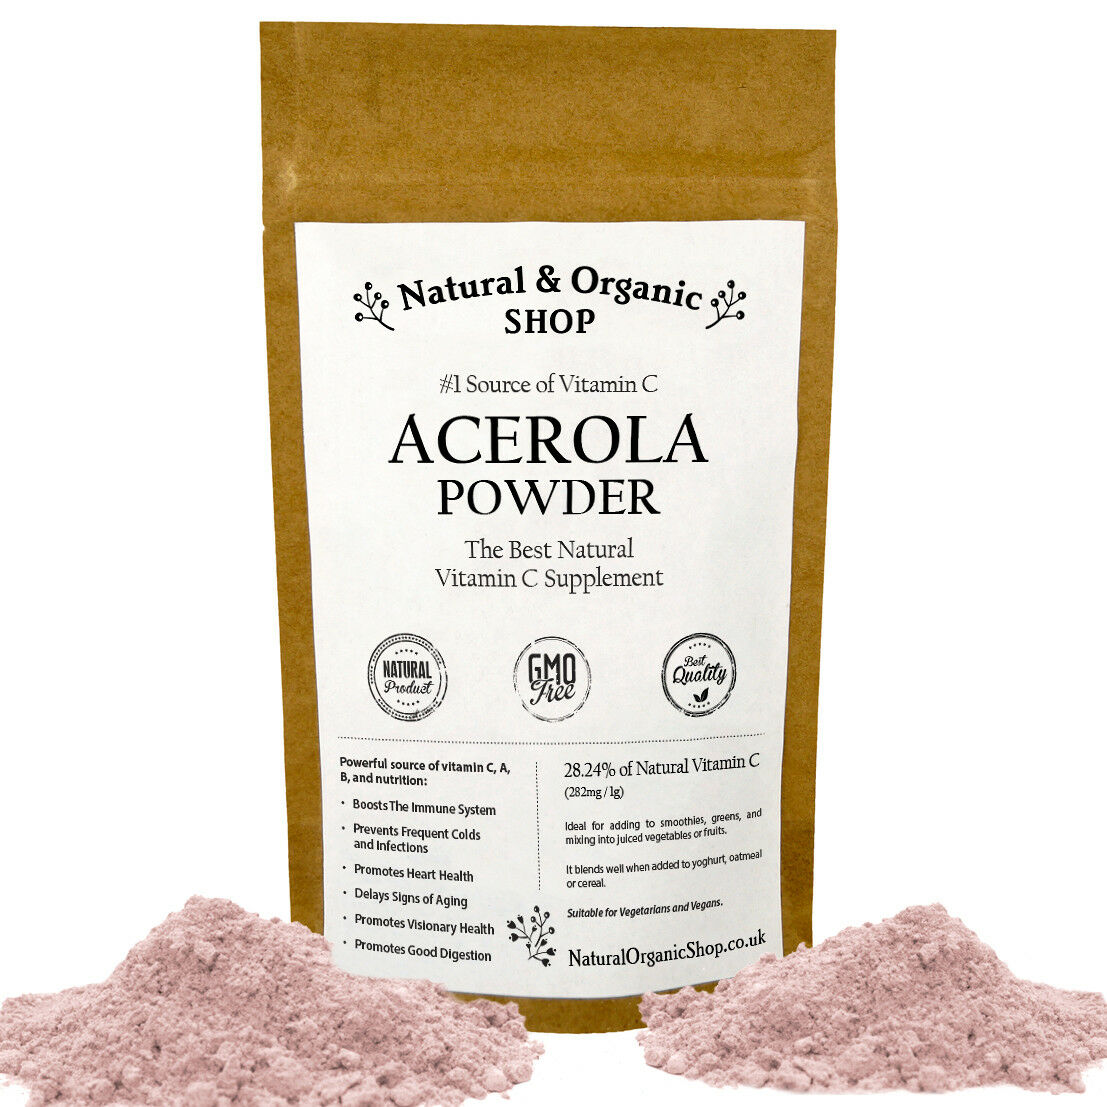 ACEROLA CHERRY POWDER - Natural & Organic Shop  (SPECIAL OFFER up to 30% OFF)